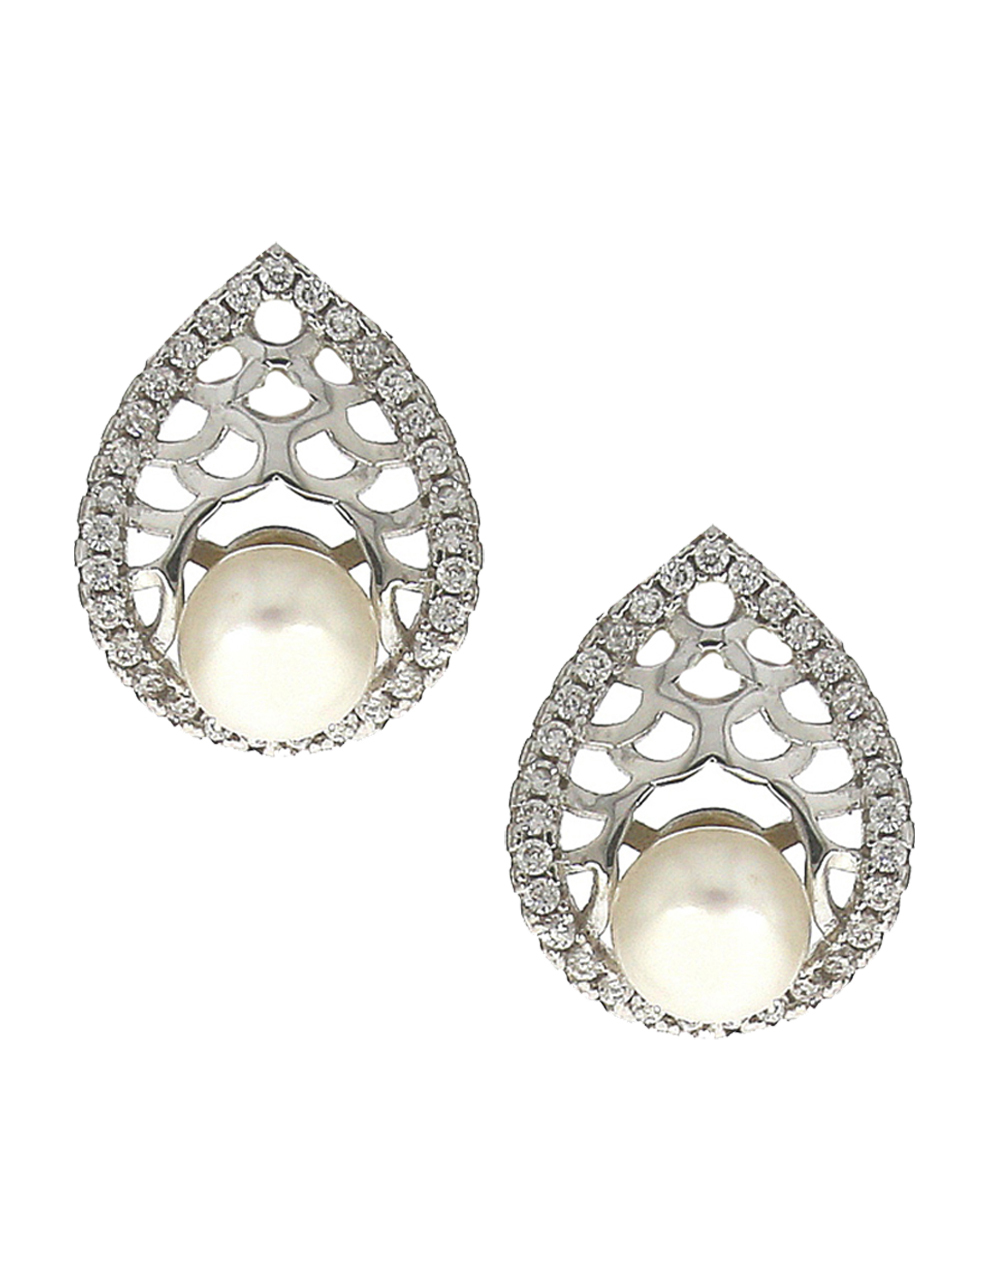 Oval shape gold-plated stones white studded and pearl bead pendant with earrings set